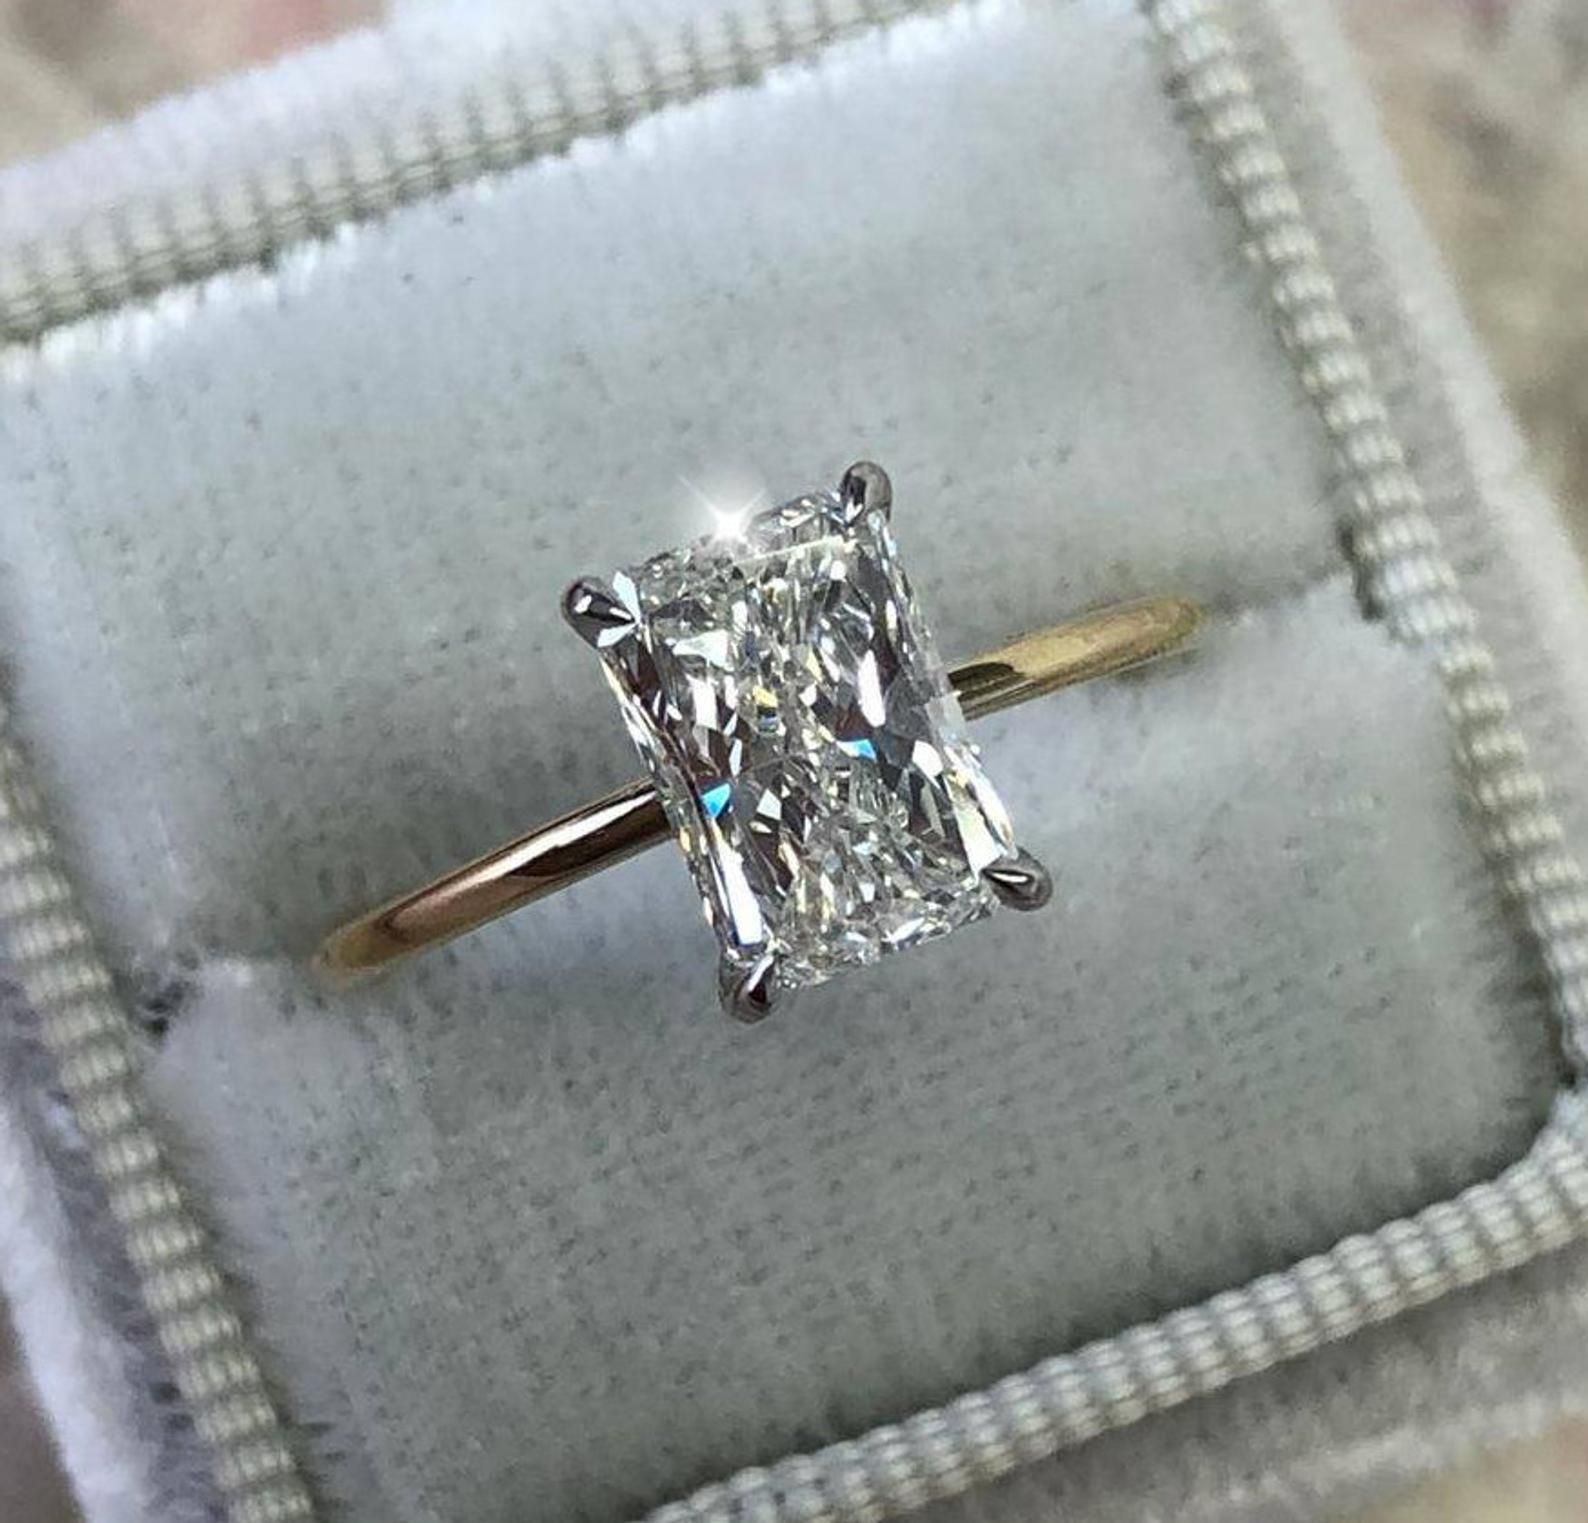 1 Carat Diamond Engagement Ring, Solitaire Radiant Diamond Ring, 14k White/Yellow Gold, Two-Tone Ring, Diamond Engagement Ring